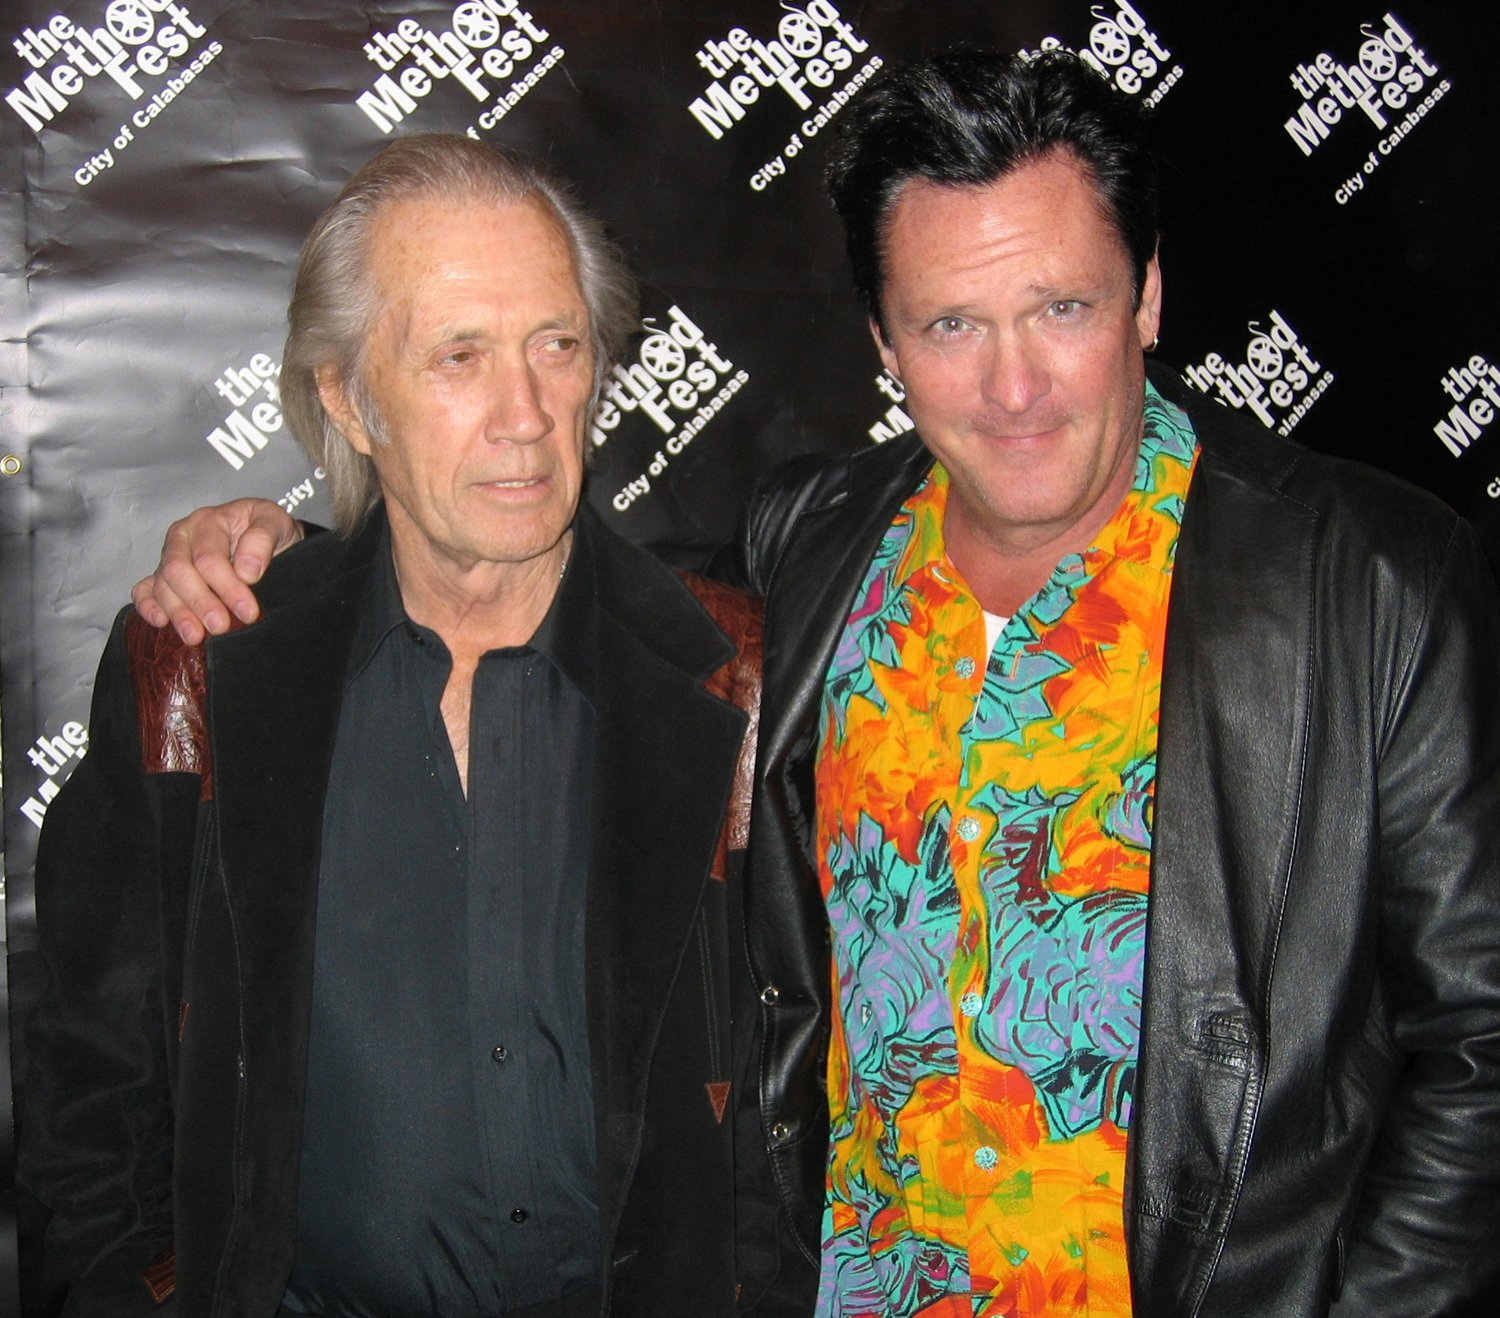 https://0201.nccdn.net/4_2/000/000/024/ec9/David-Carradine--Michael-Madsen-0124.jpg